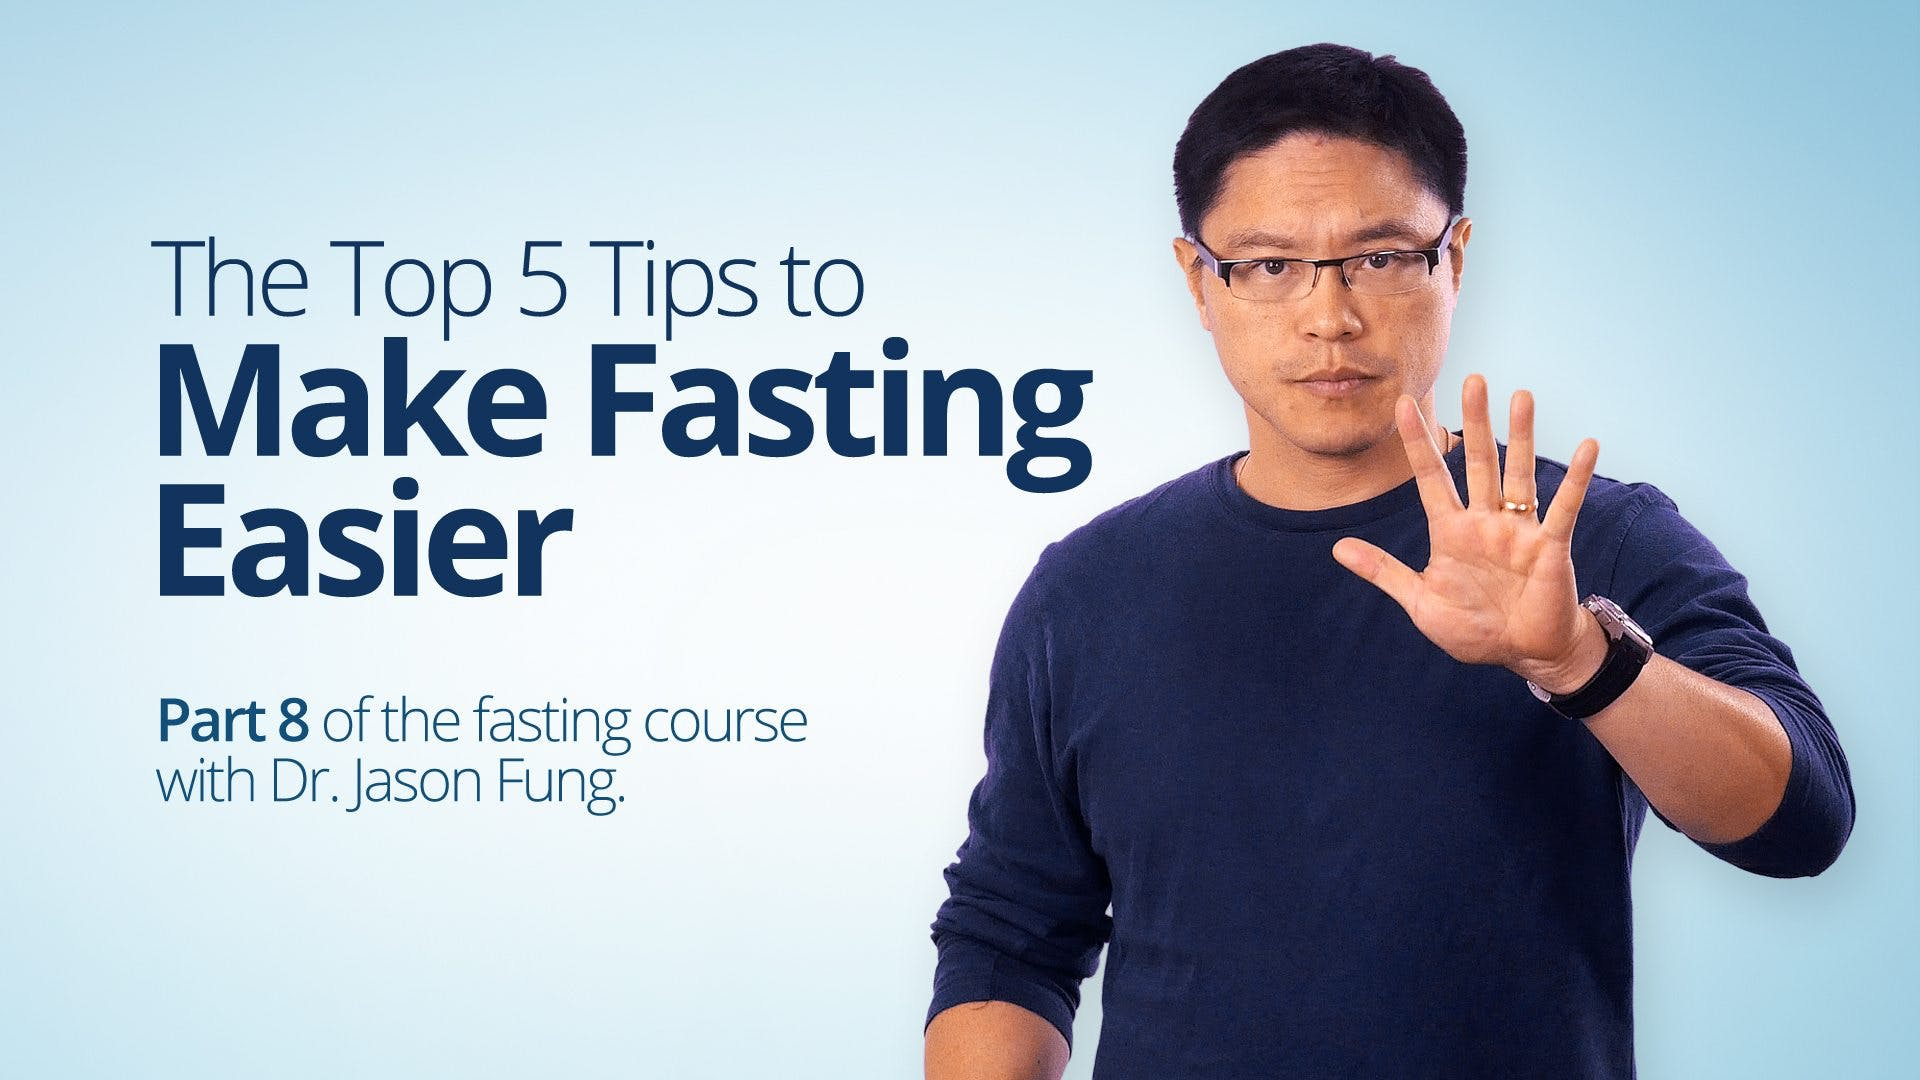 The Top 5 Tips to Make Fasting Easier